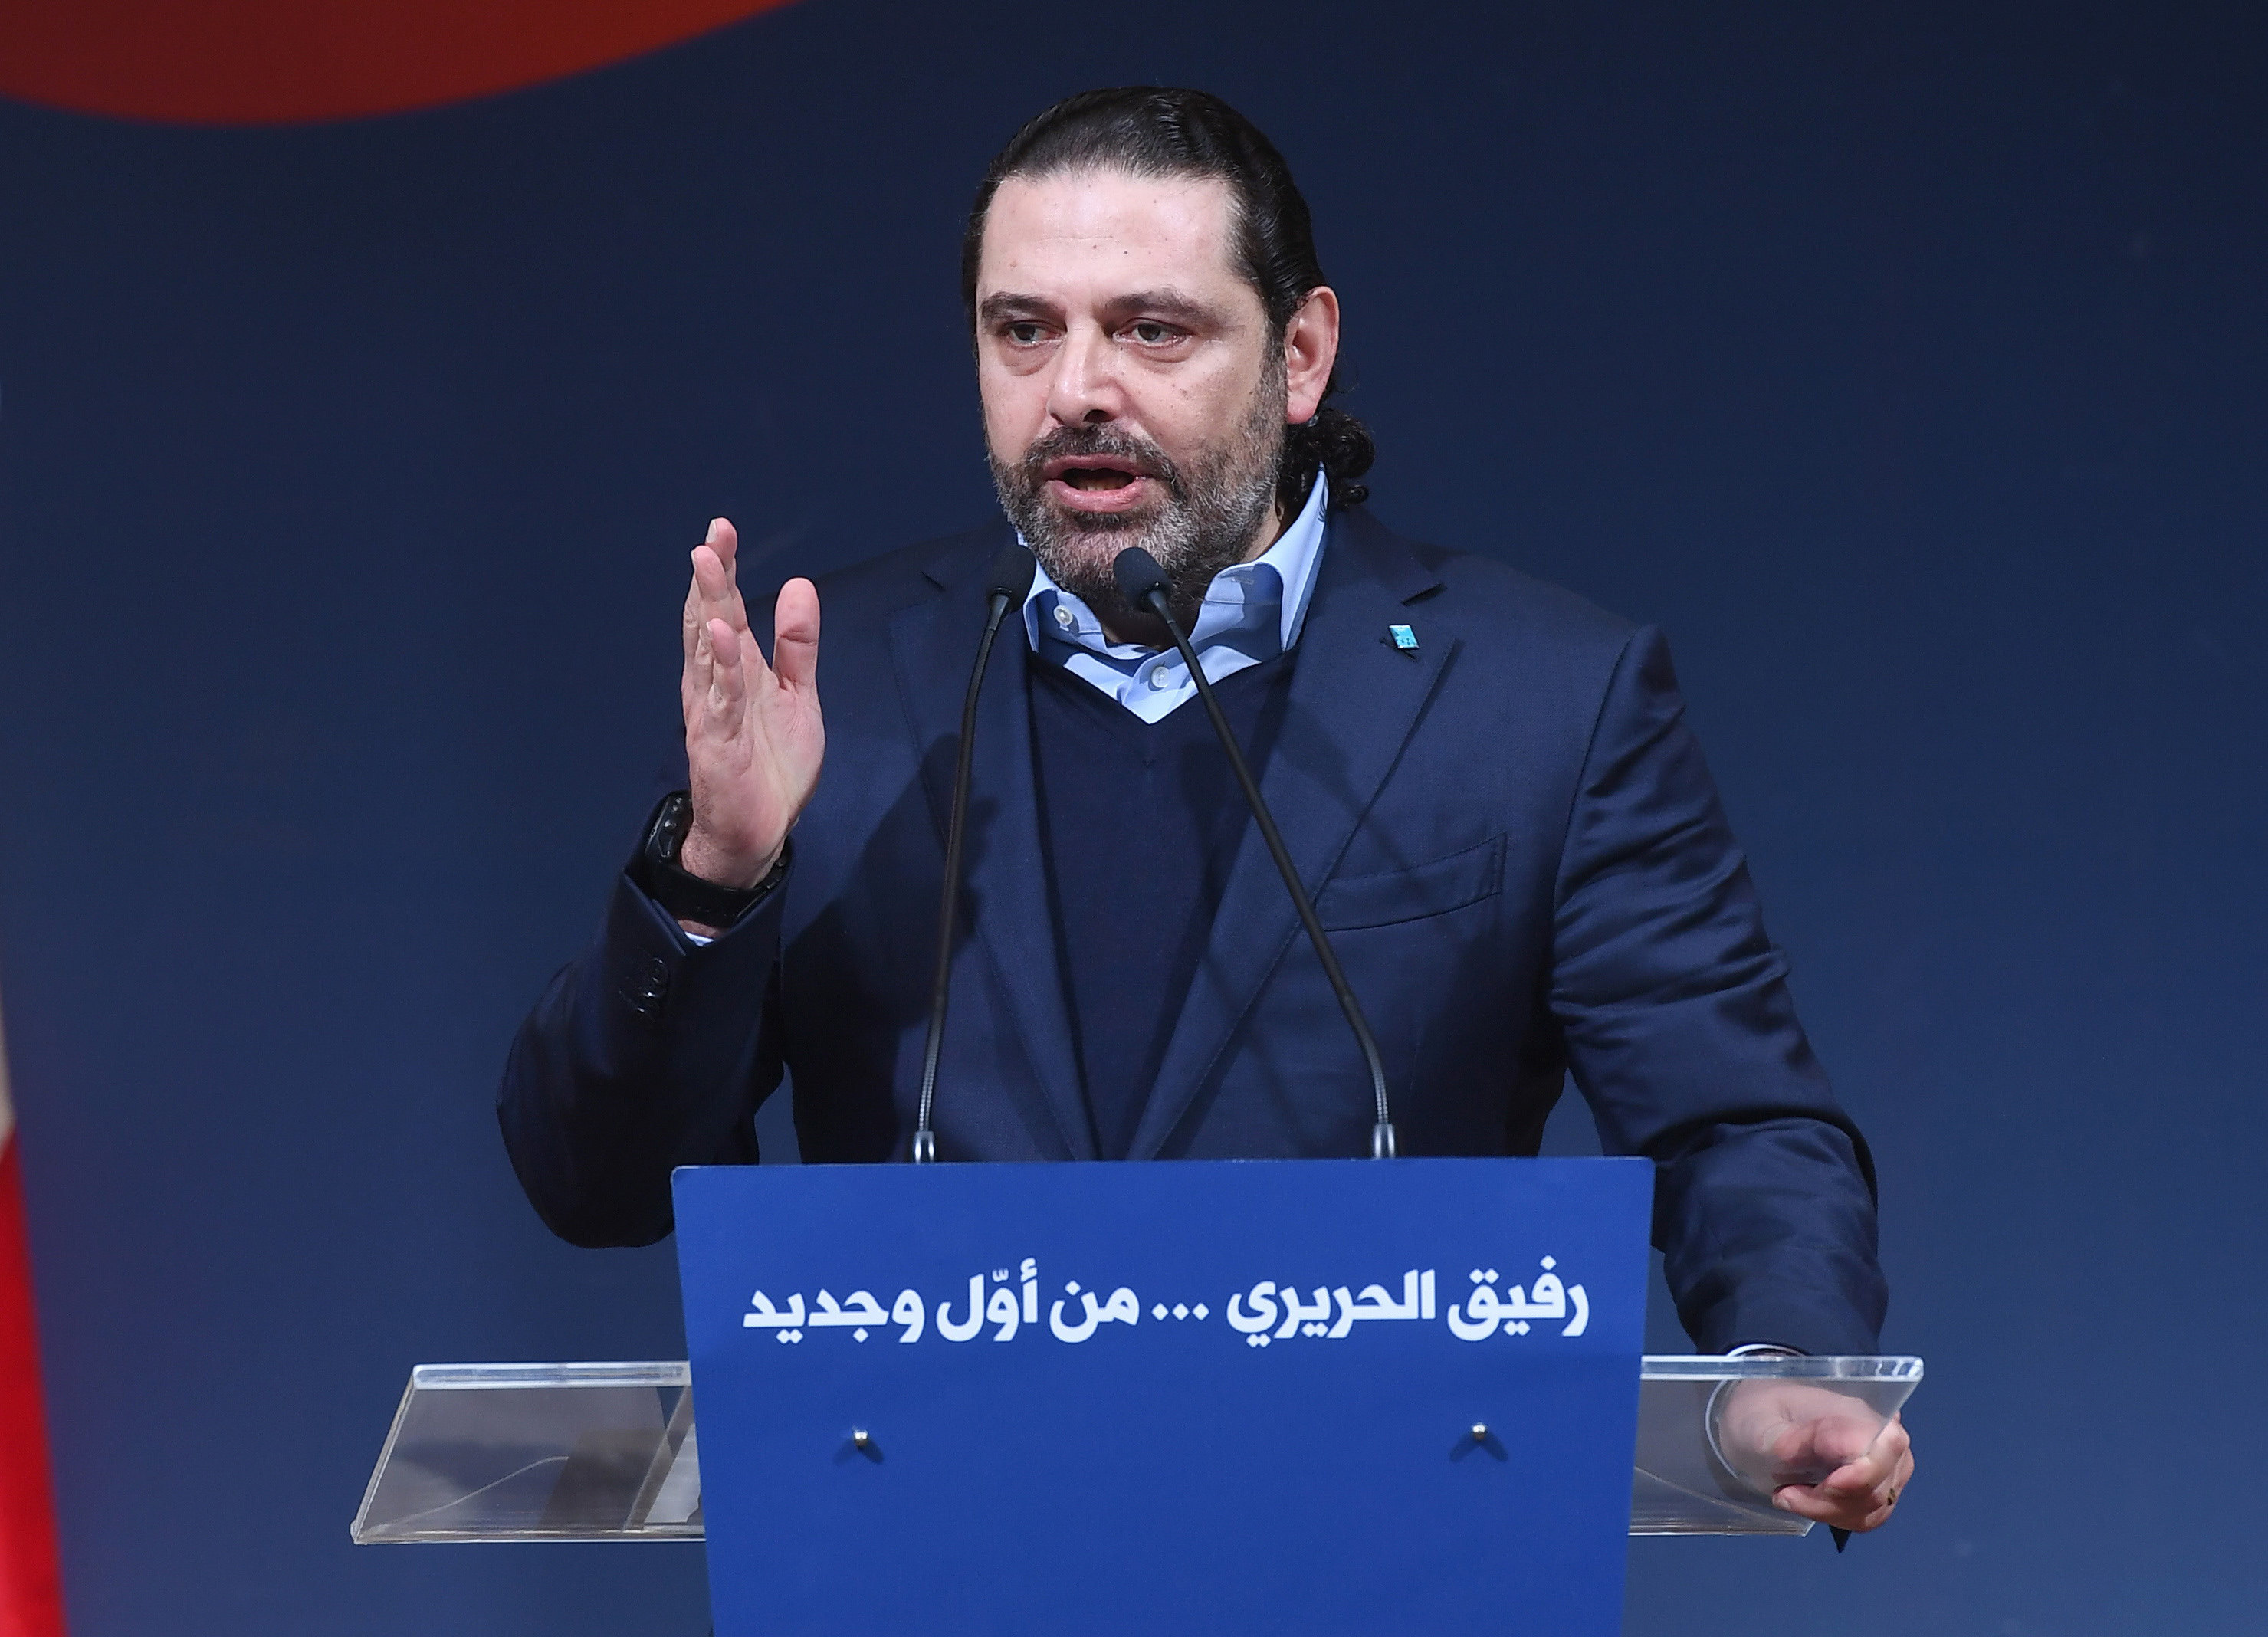 Pr Minister Saad Hariri at 14 of February Memory 10